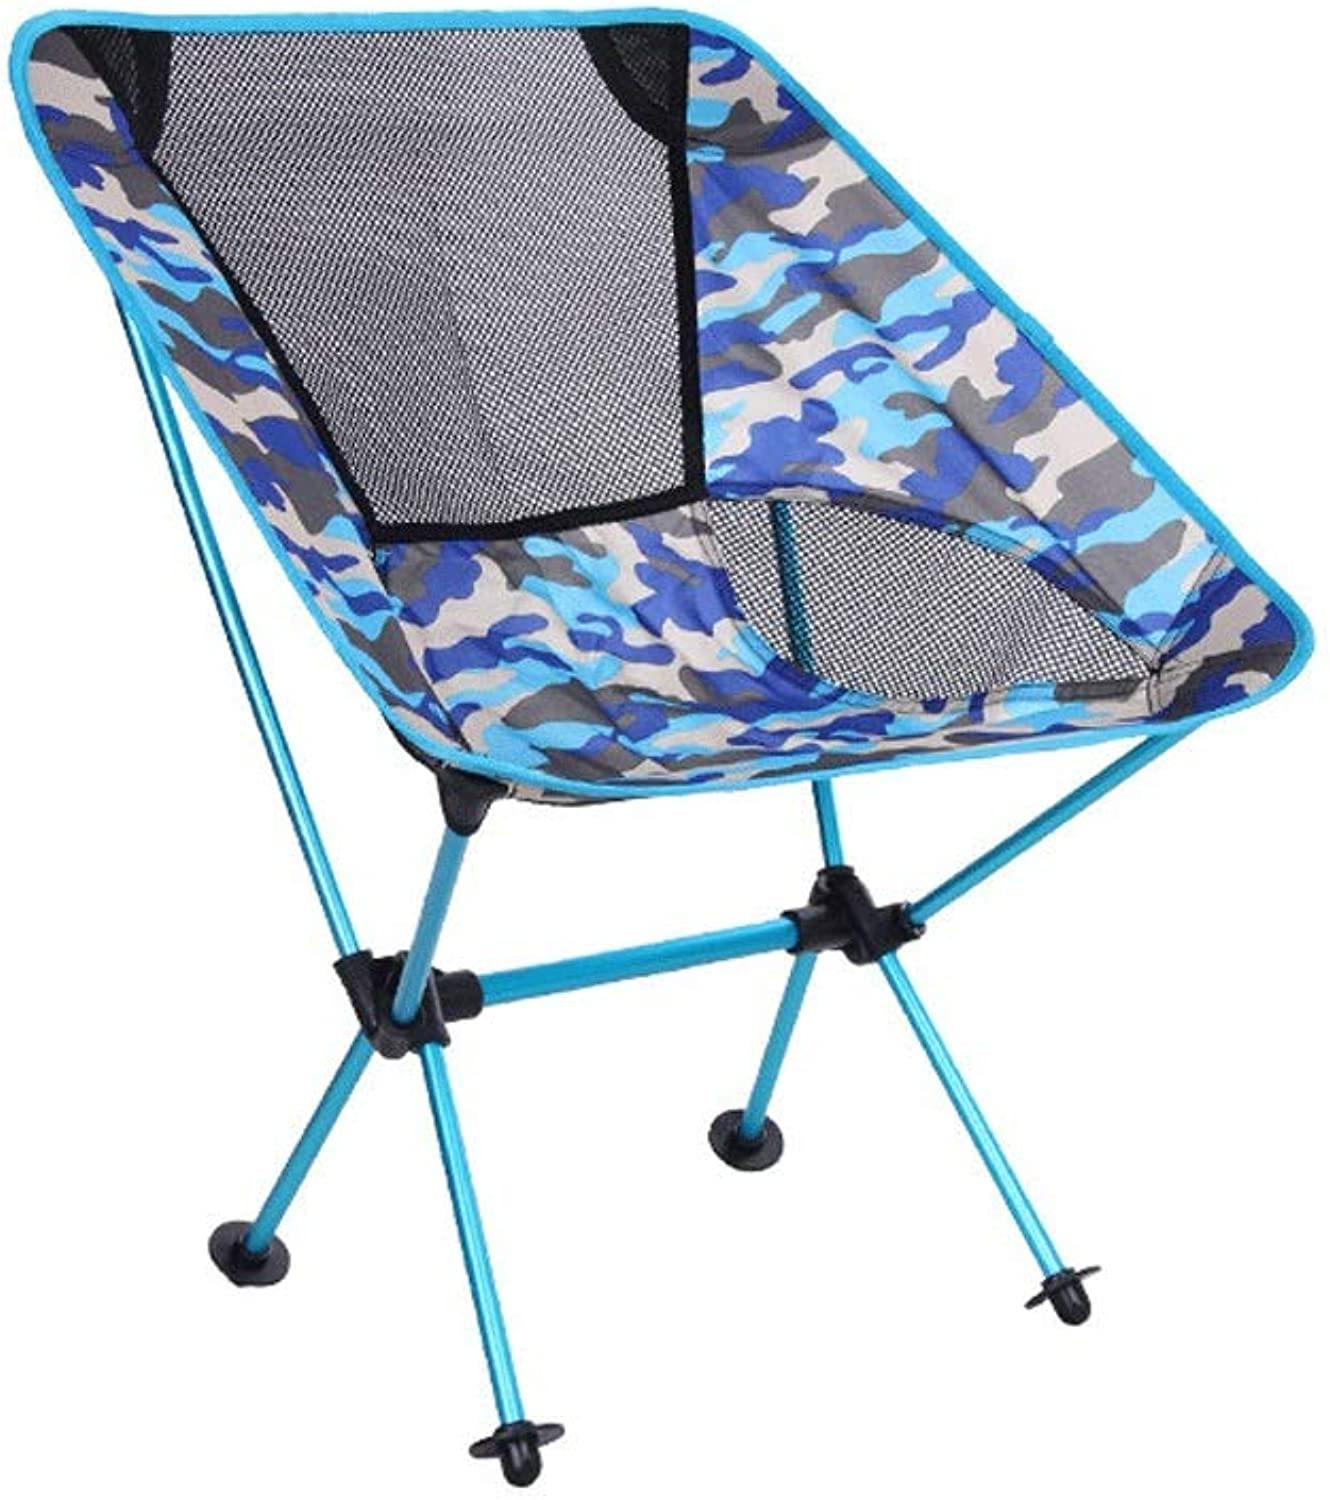 AQnice Portable Camping Chair with Storage Bag Compact Ultralight Folding Backpacking Chairs in a Carry Bag, Heavy Duty 150Kg Capacity Hiker, Camp, Beach, Outdoor (color   C)